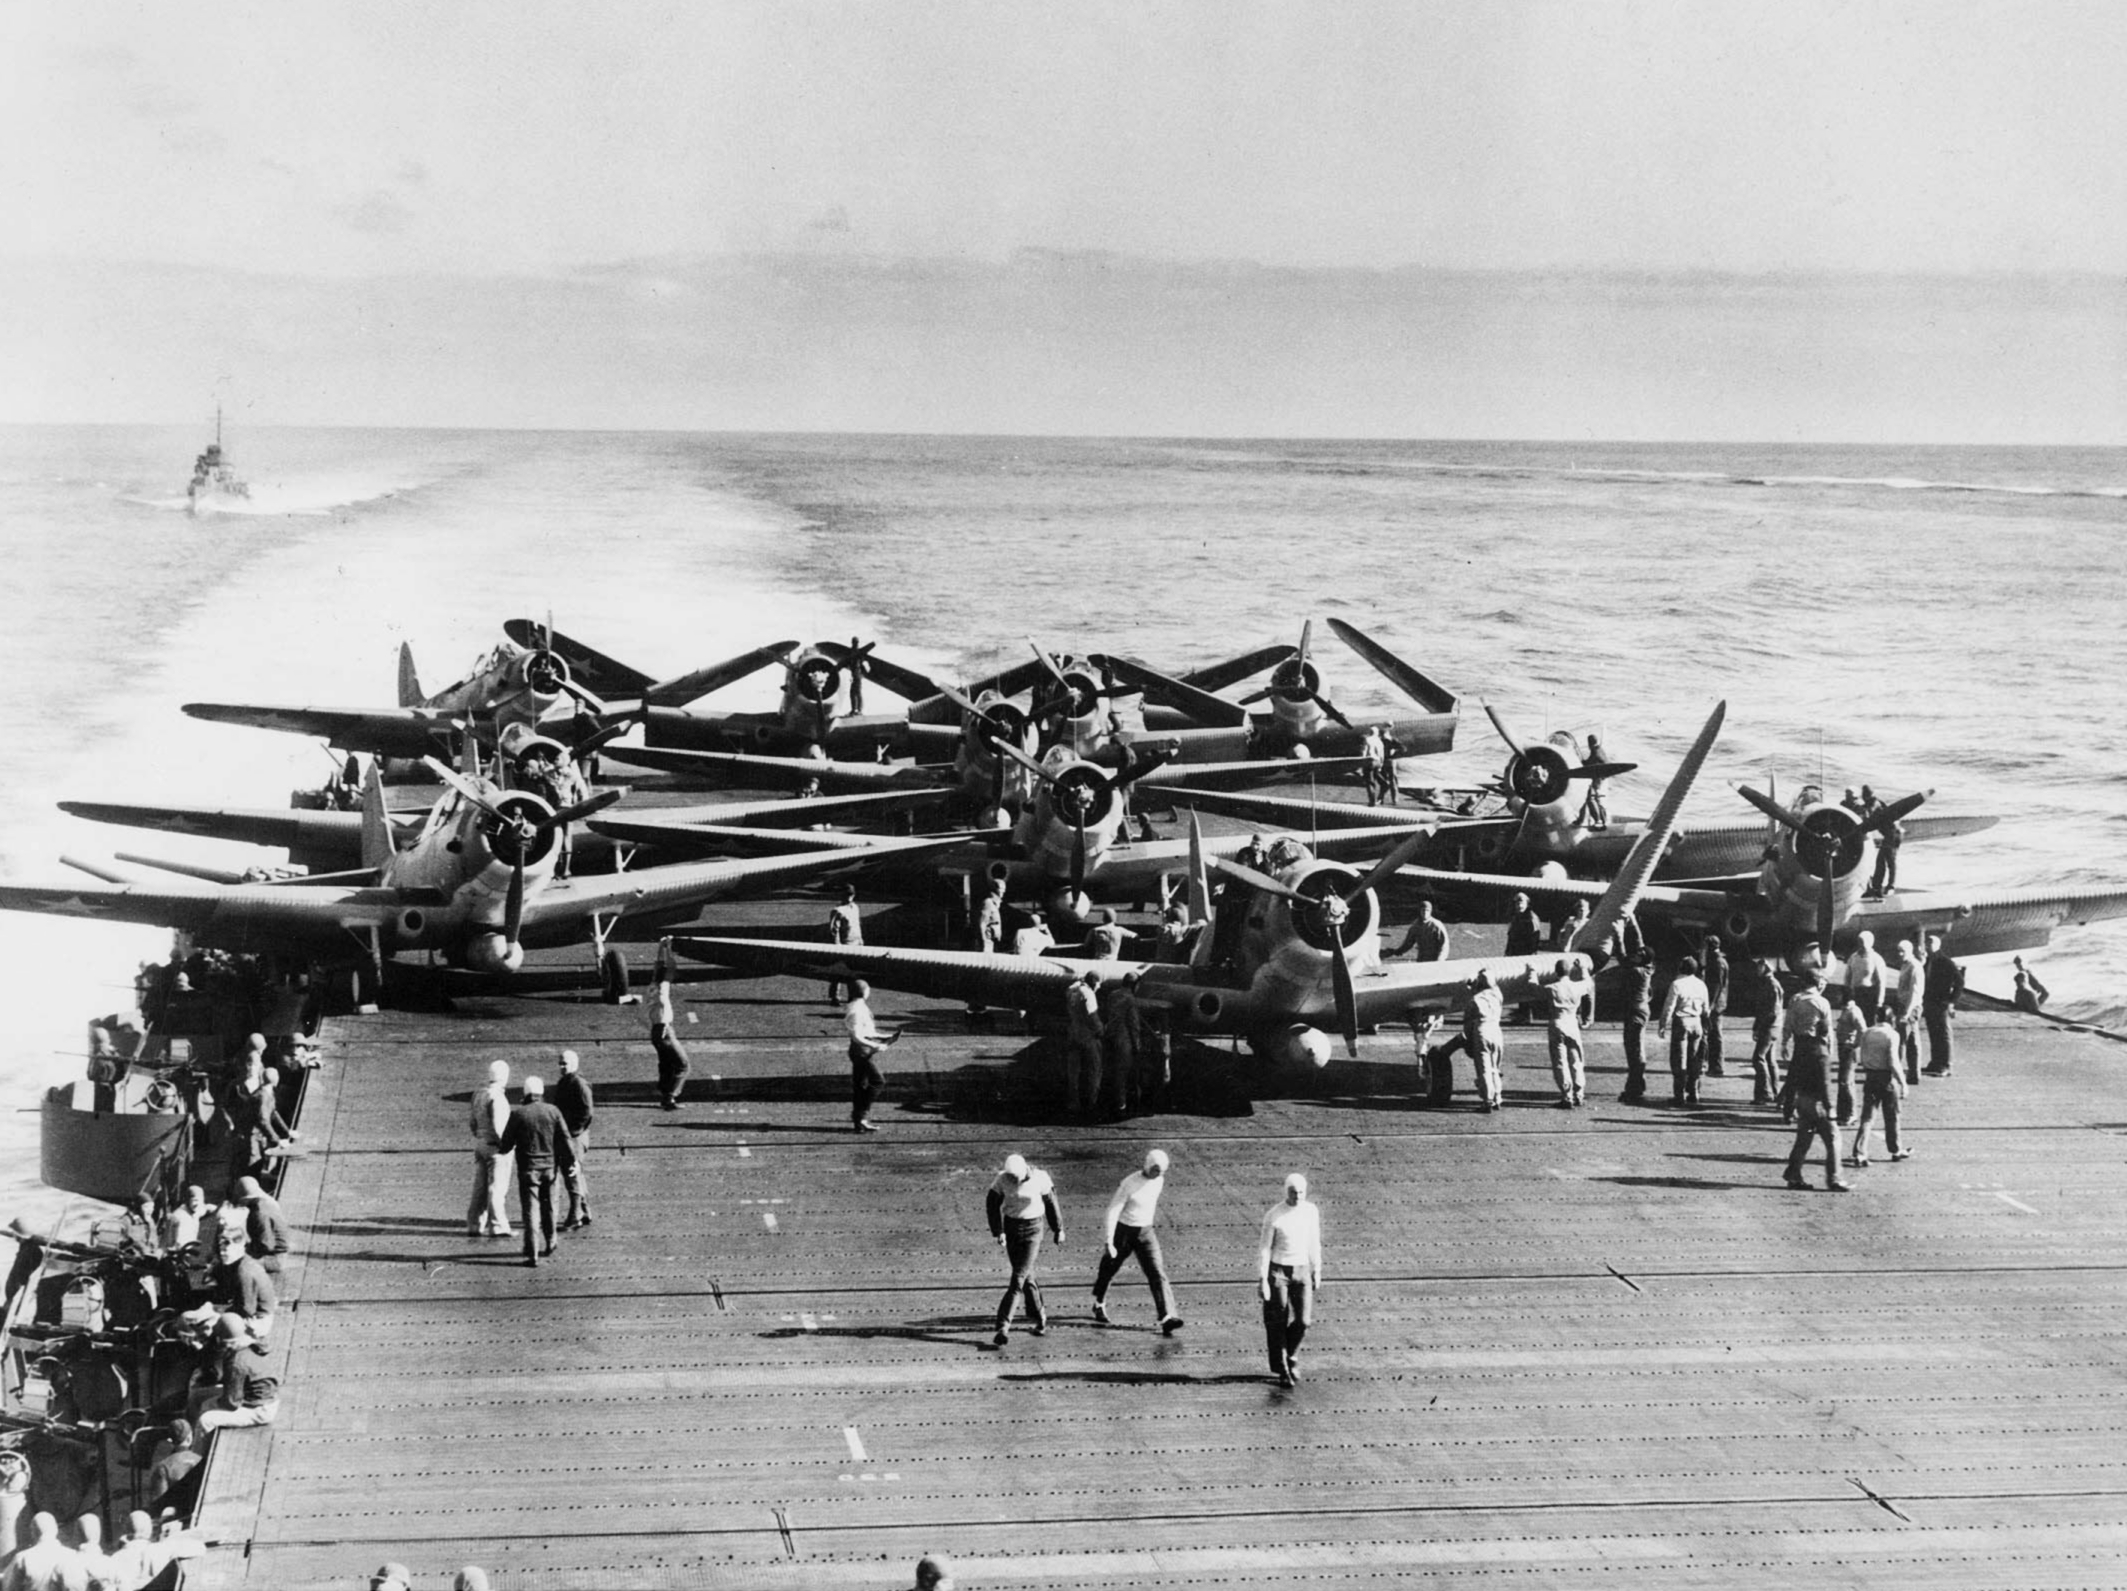 TBDs_on_USS_Enterprise_(CV-6)_during_Battle_of_Midway